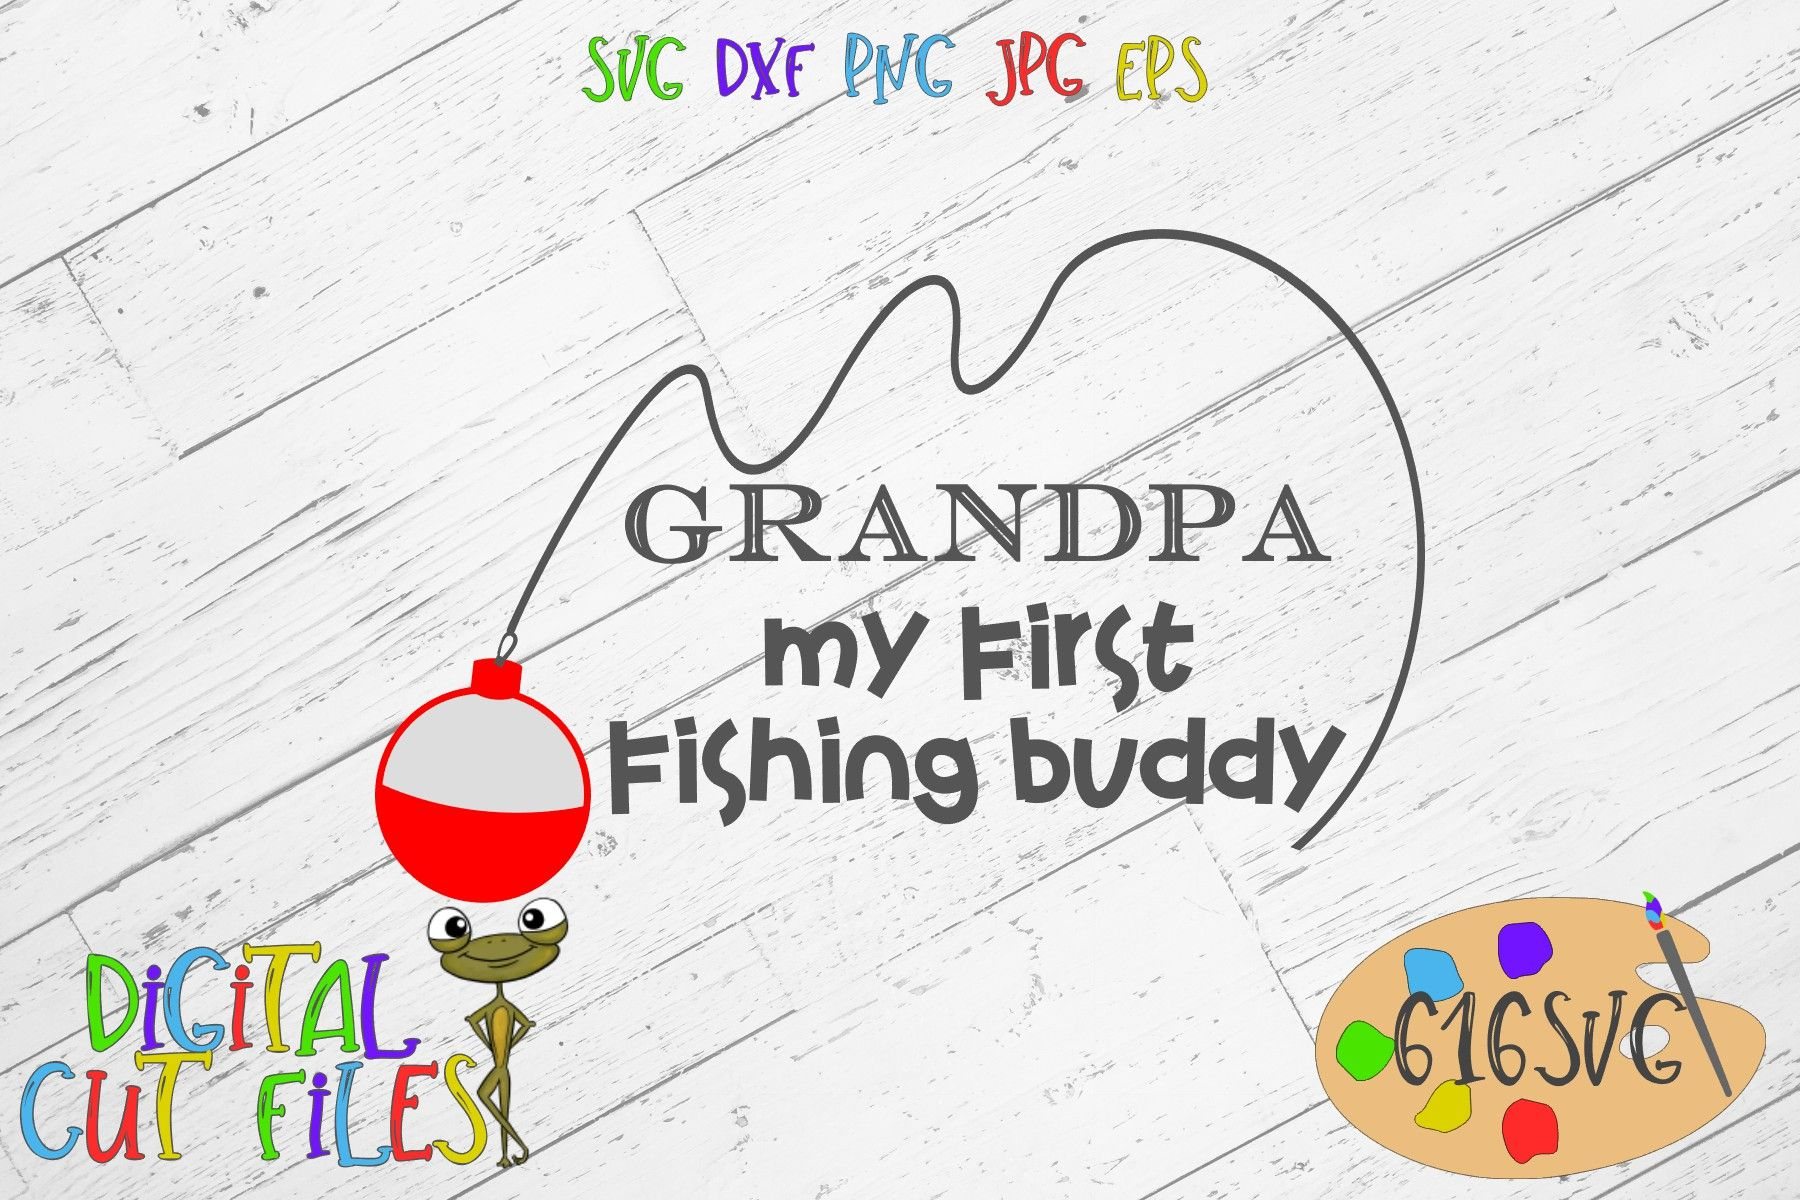 Download Grandpas Fishing Buddy Svg Dxf Graphic Art Cut Files Craft Supplies Tools Paper Party Kids Vadel Com